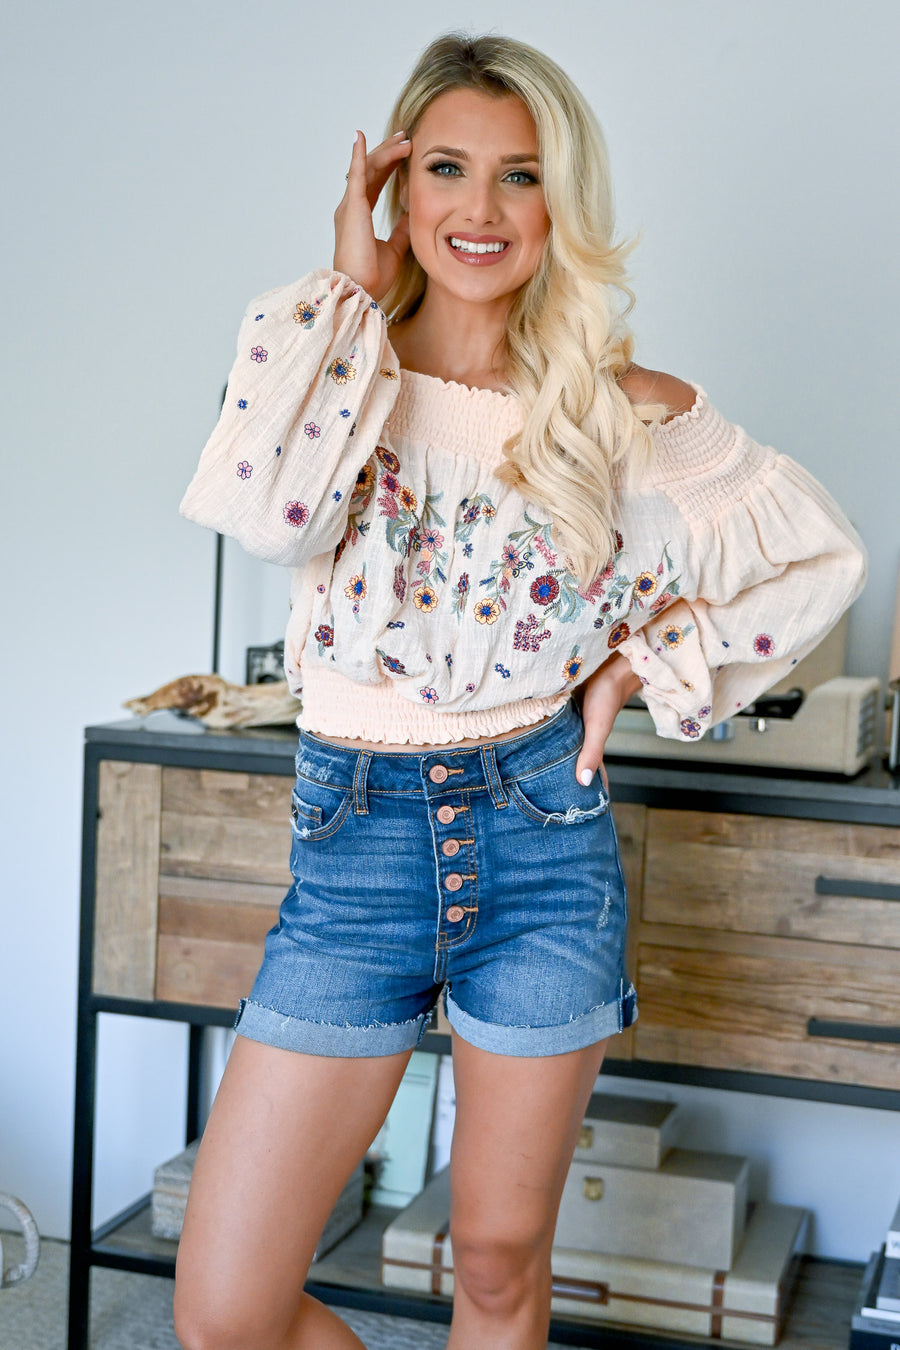 Peace Out Embroidered Top - Peach womens trendy off the shoulder floral embroidered lantern sleeve top closet candy front